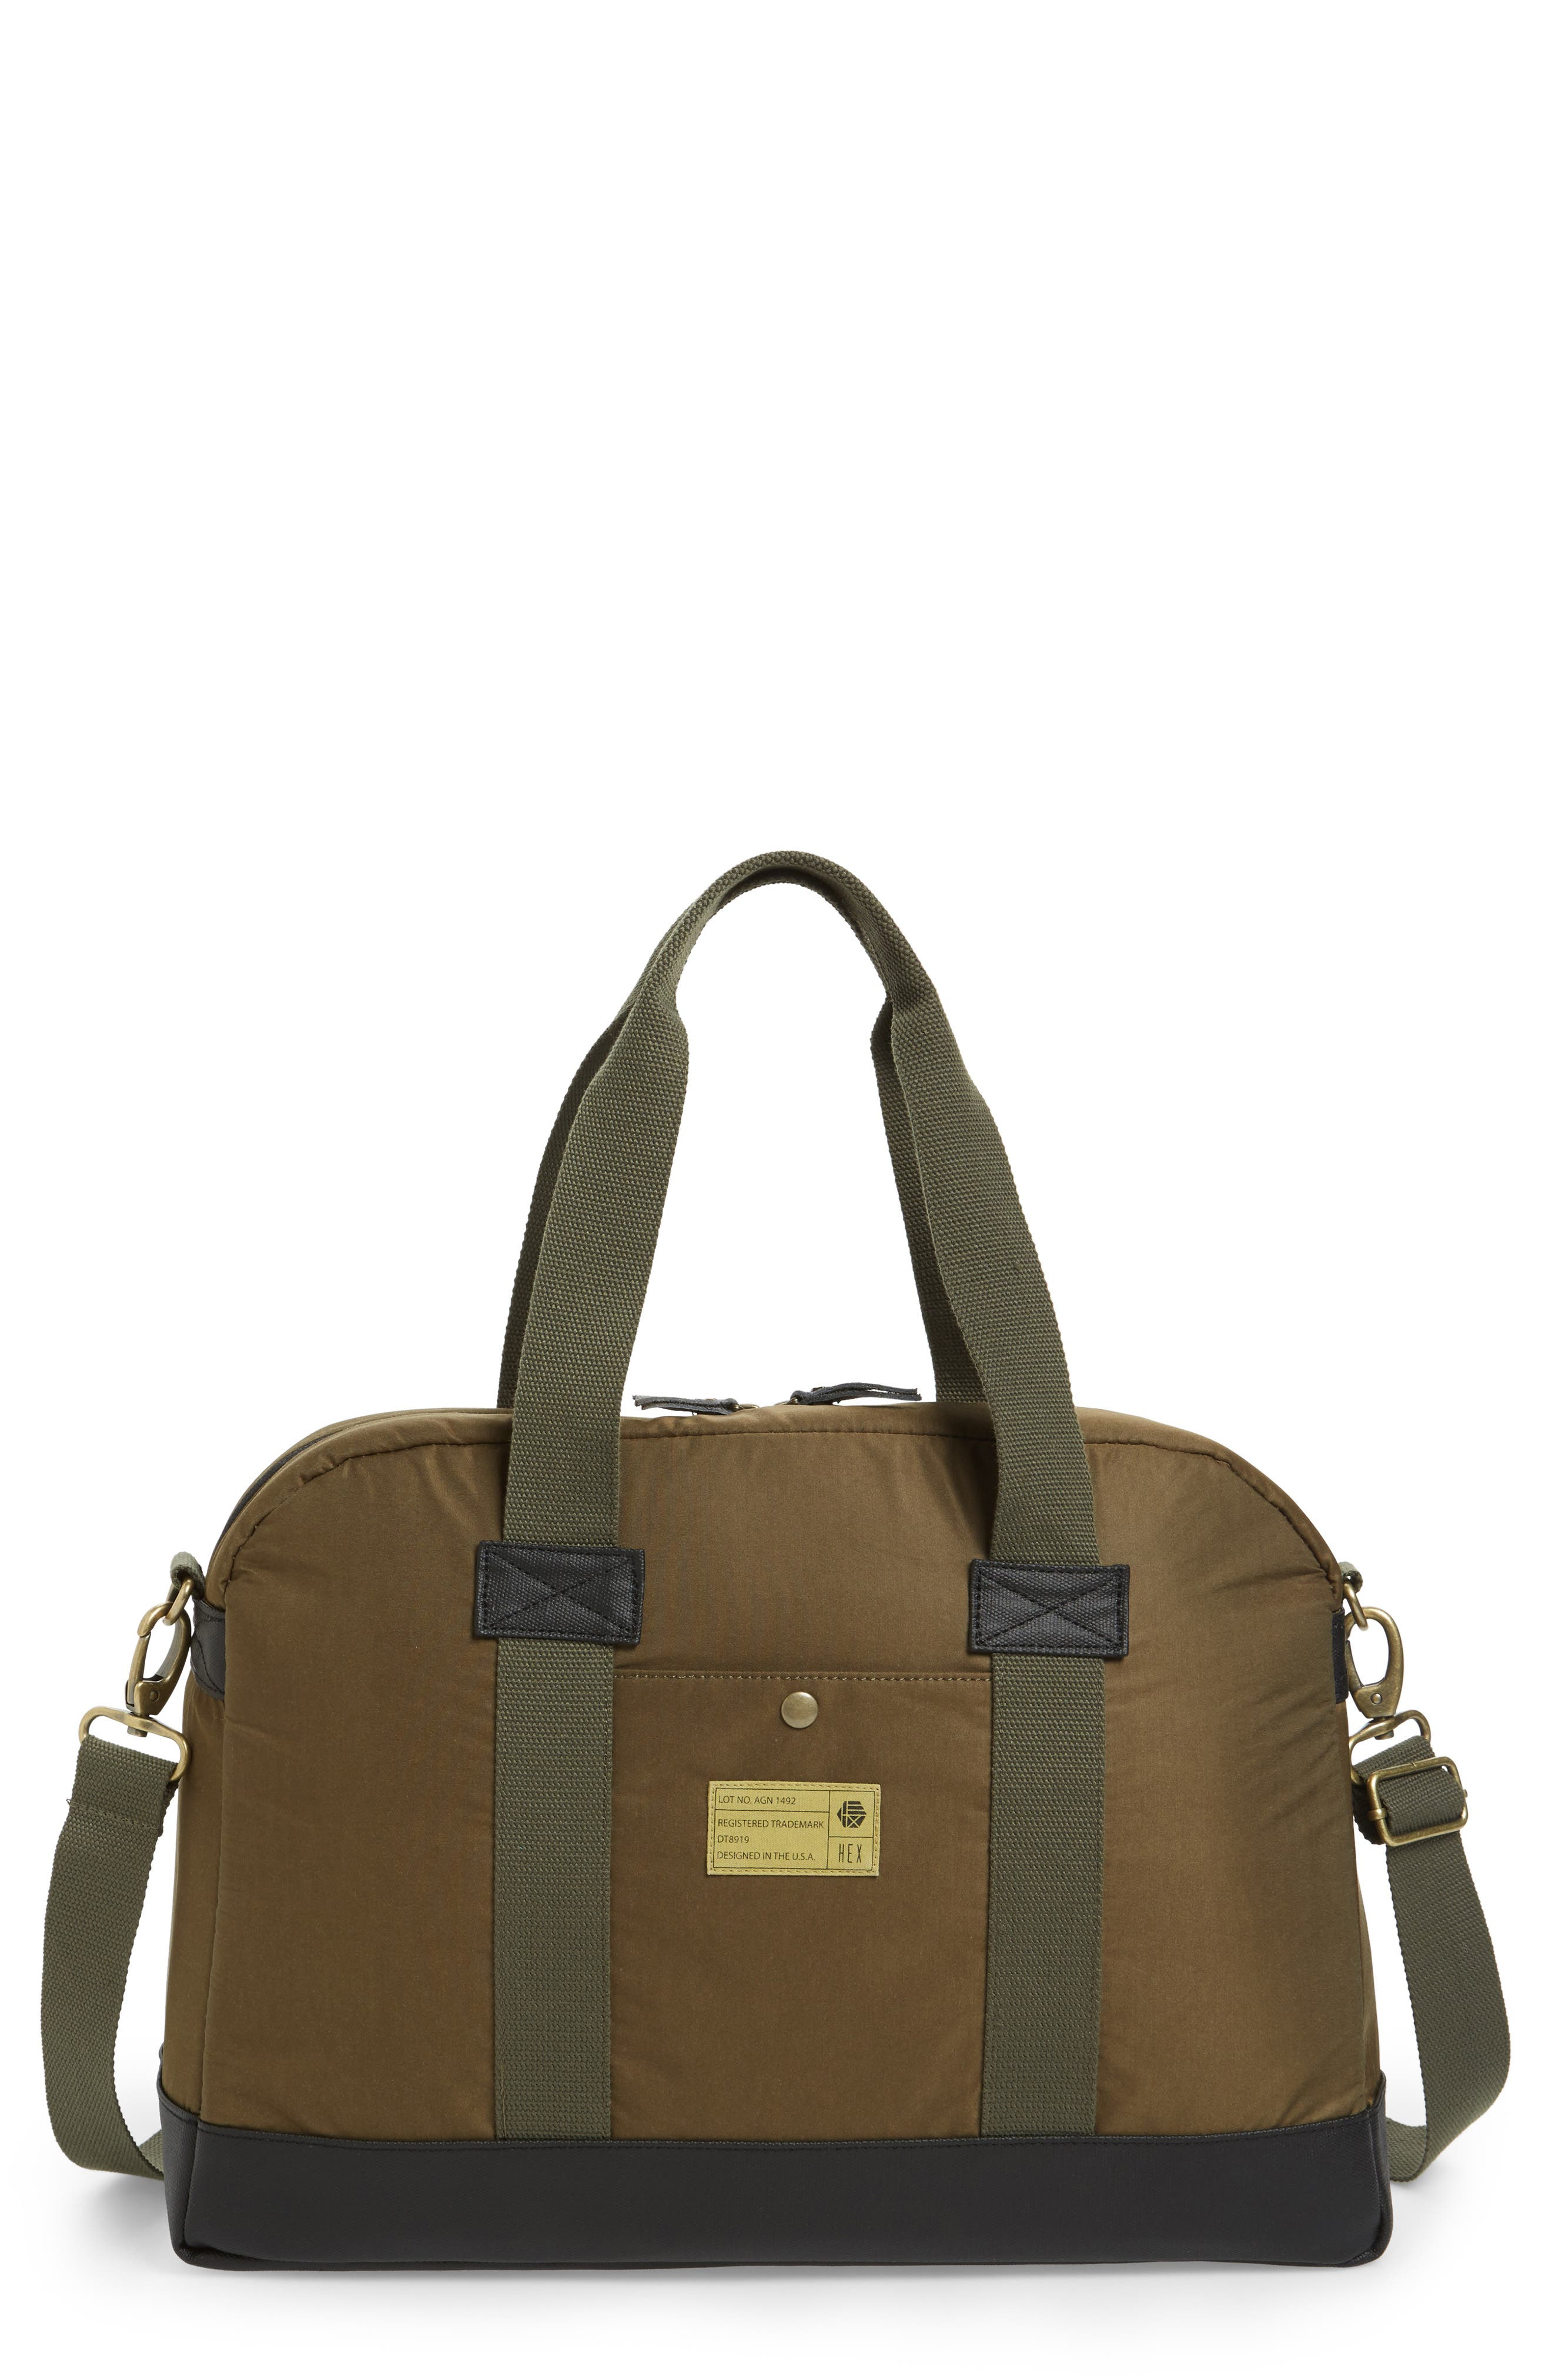 HEX Laptop Duffel Bag